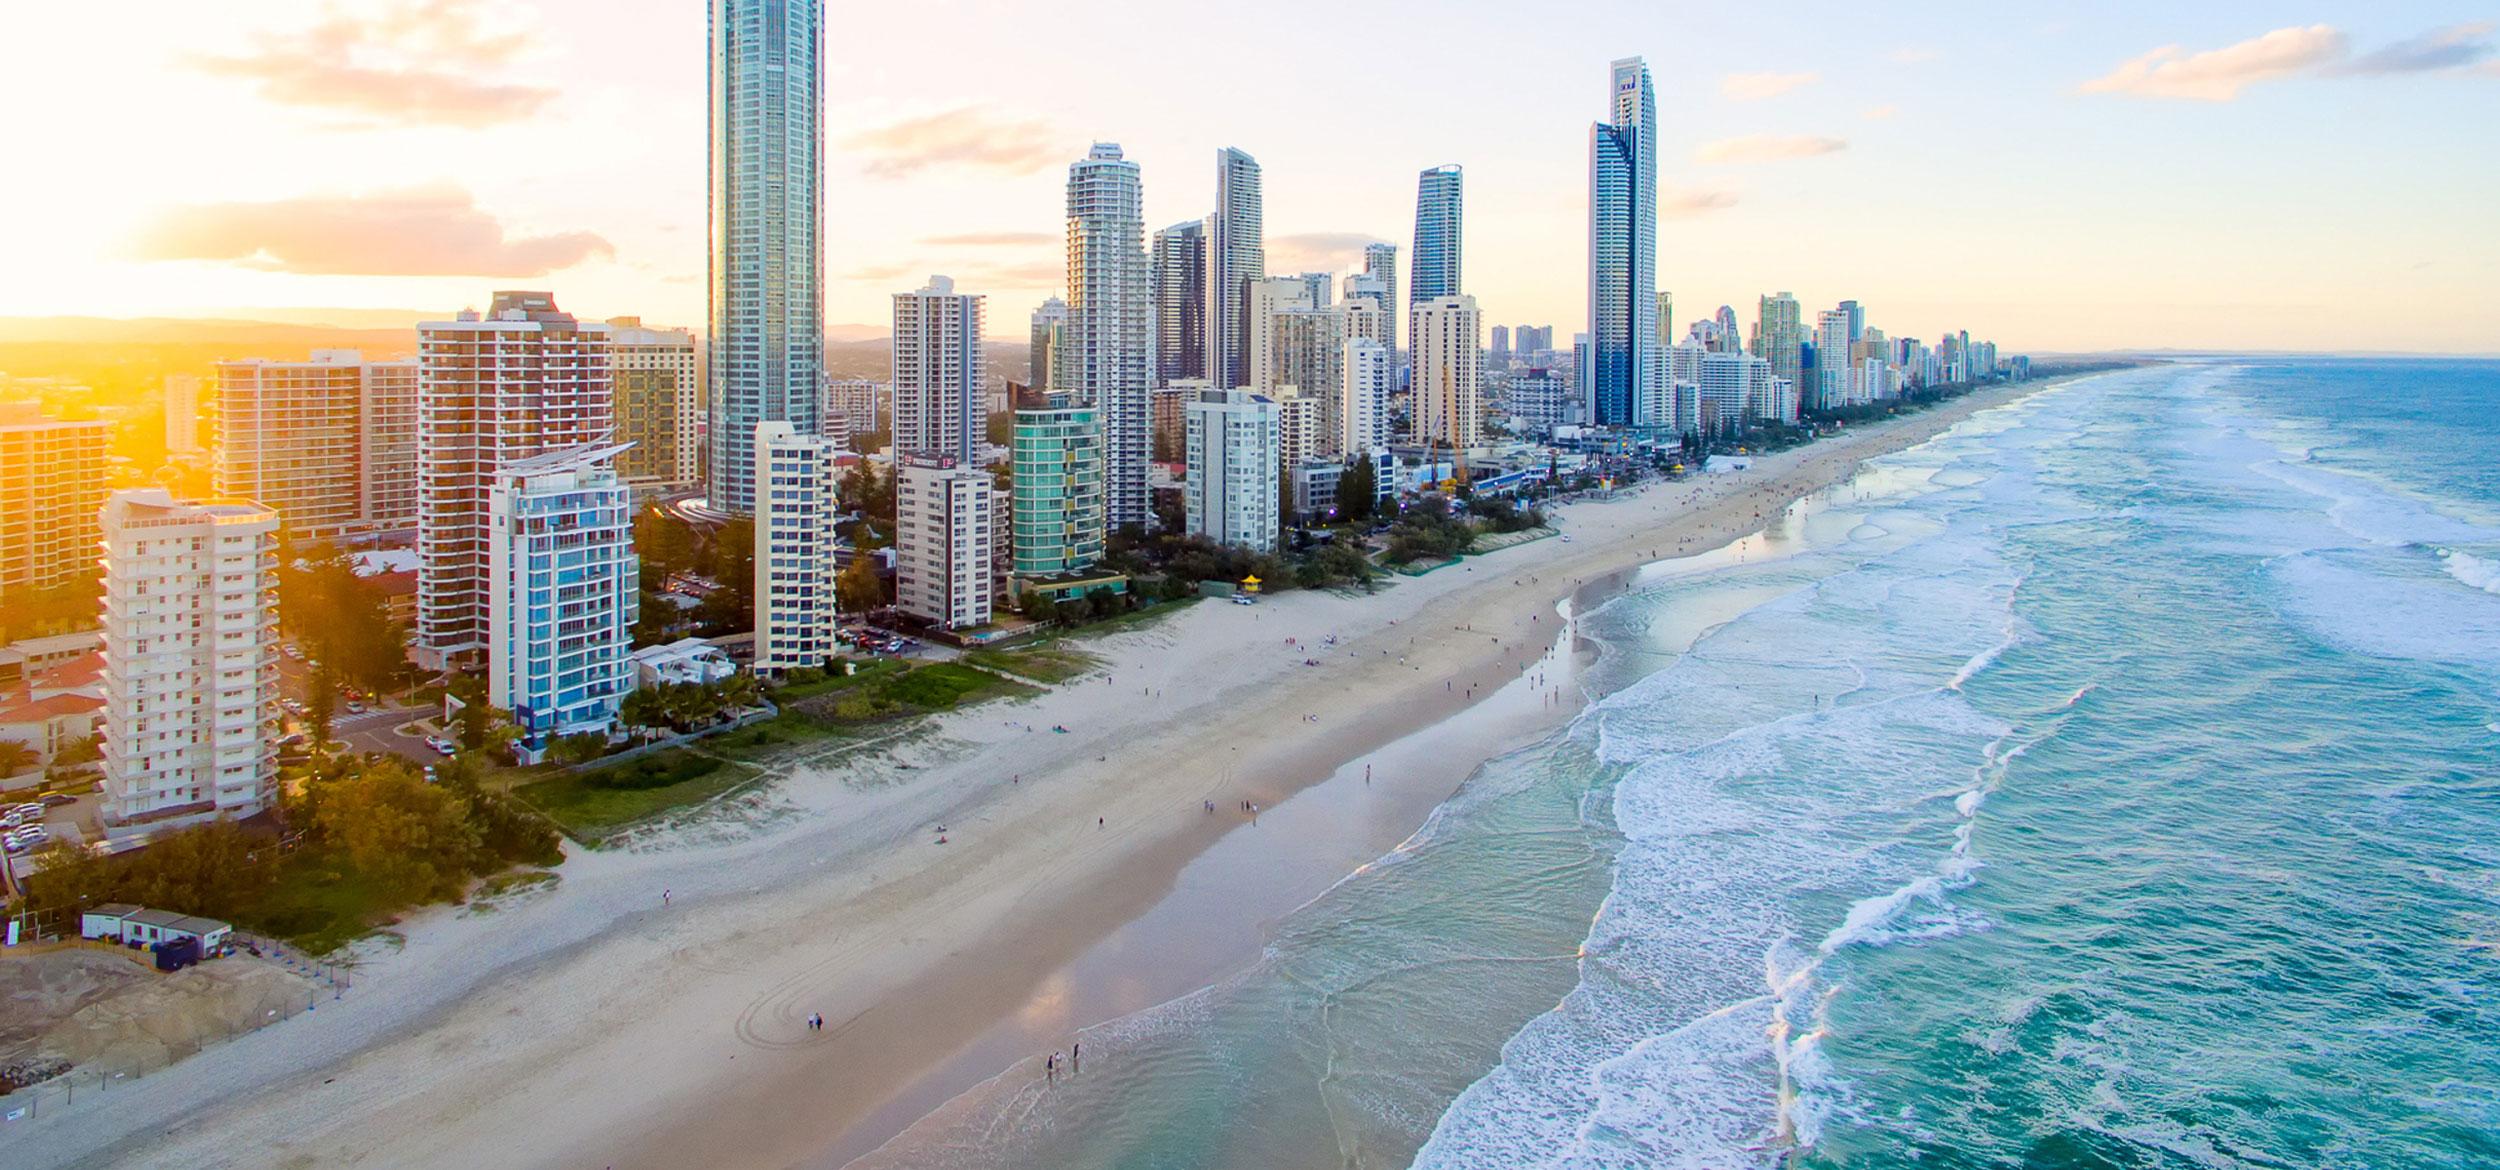 Surfers Paradise on the Gold Coast of Queensland, Australia.